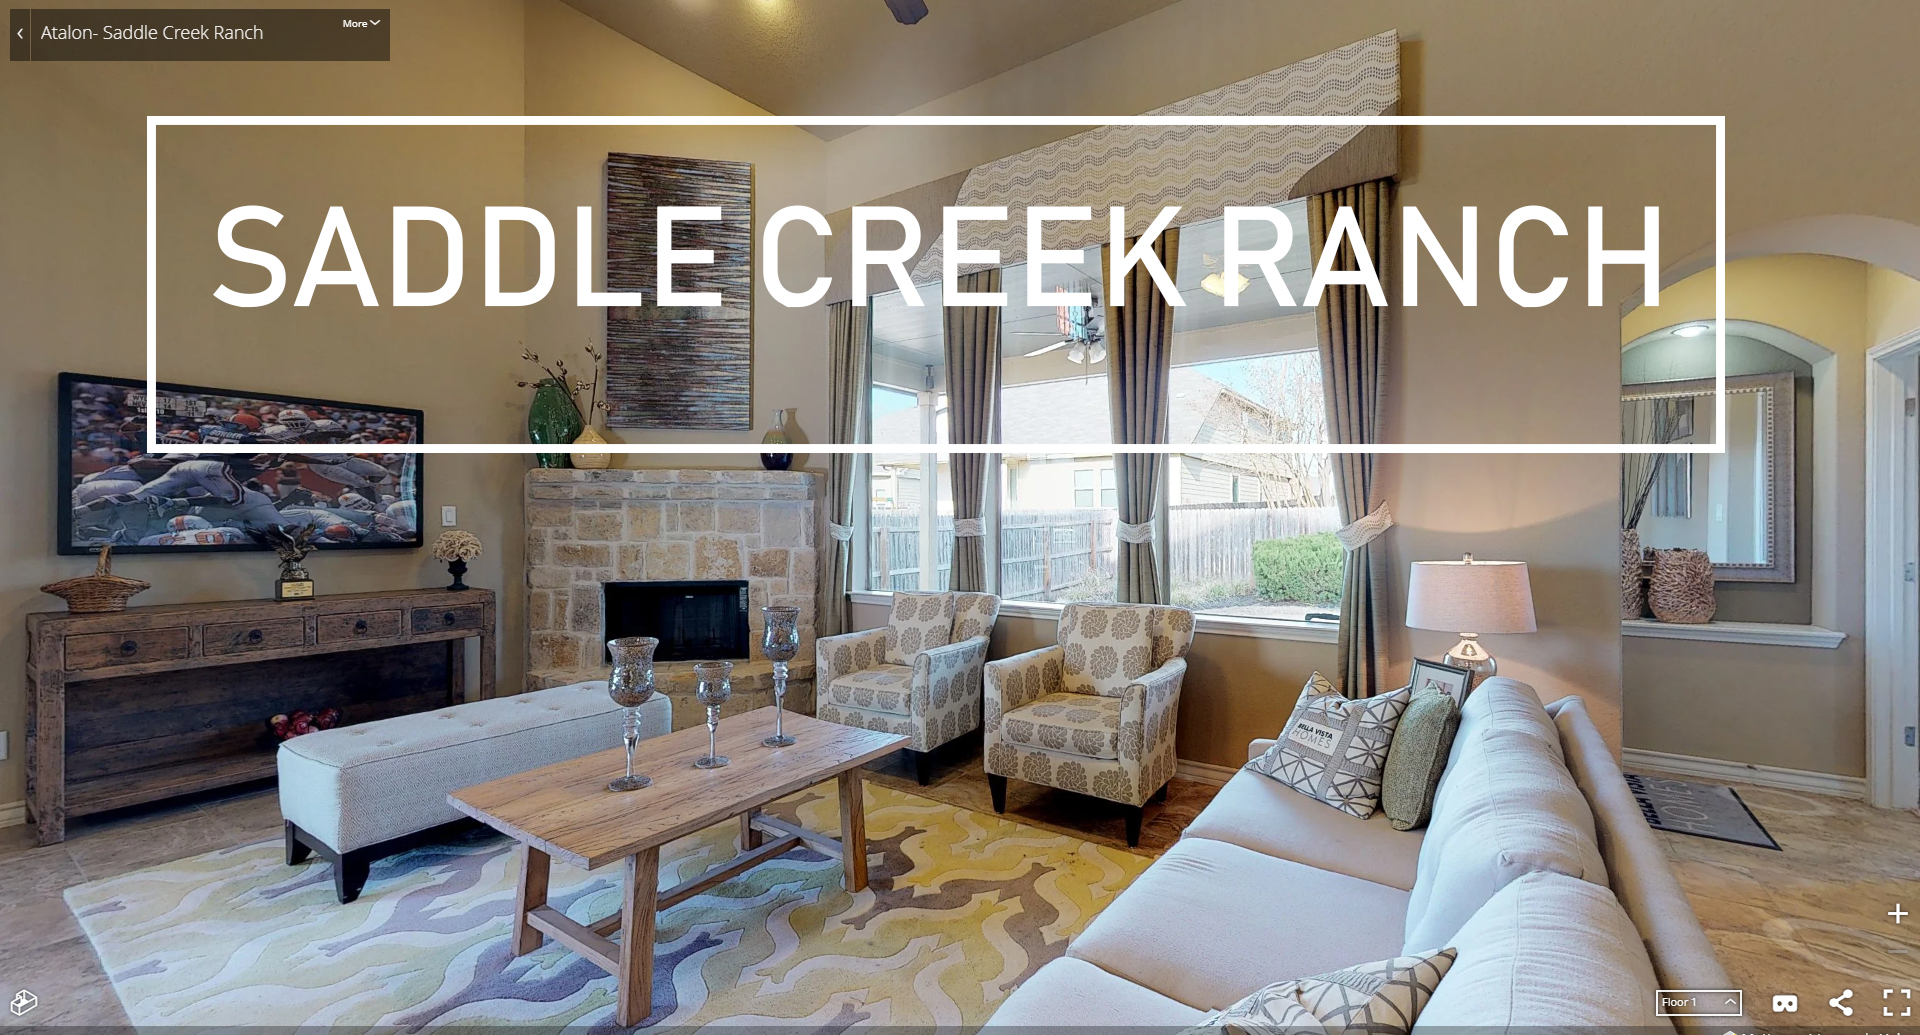 Saddle Creek Ranch Tour Video